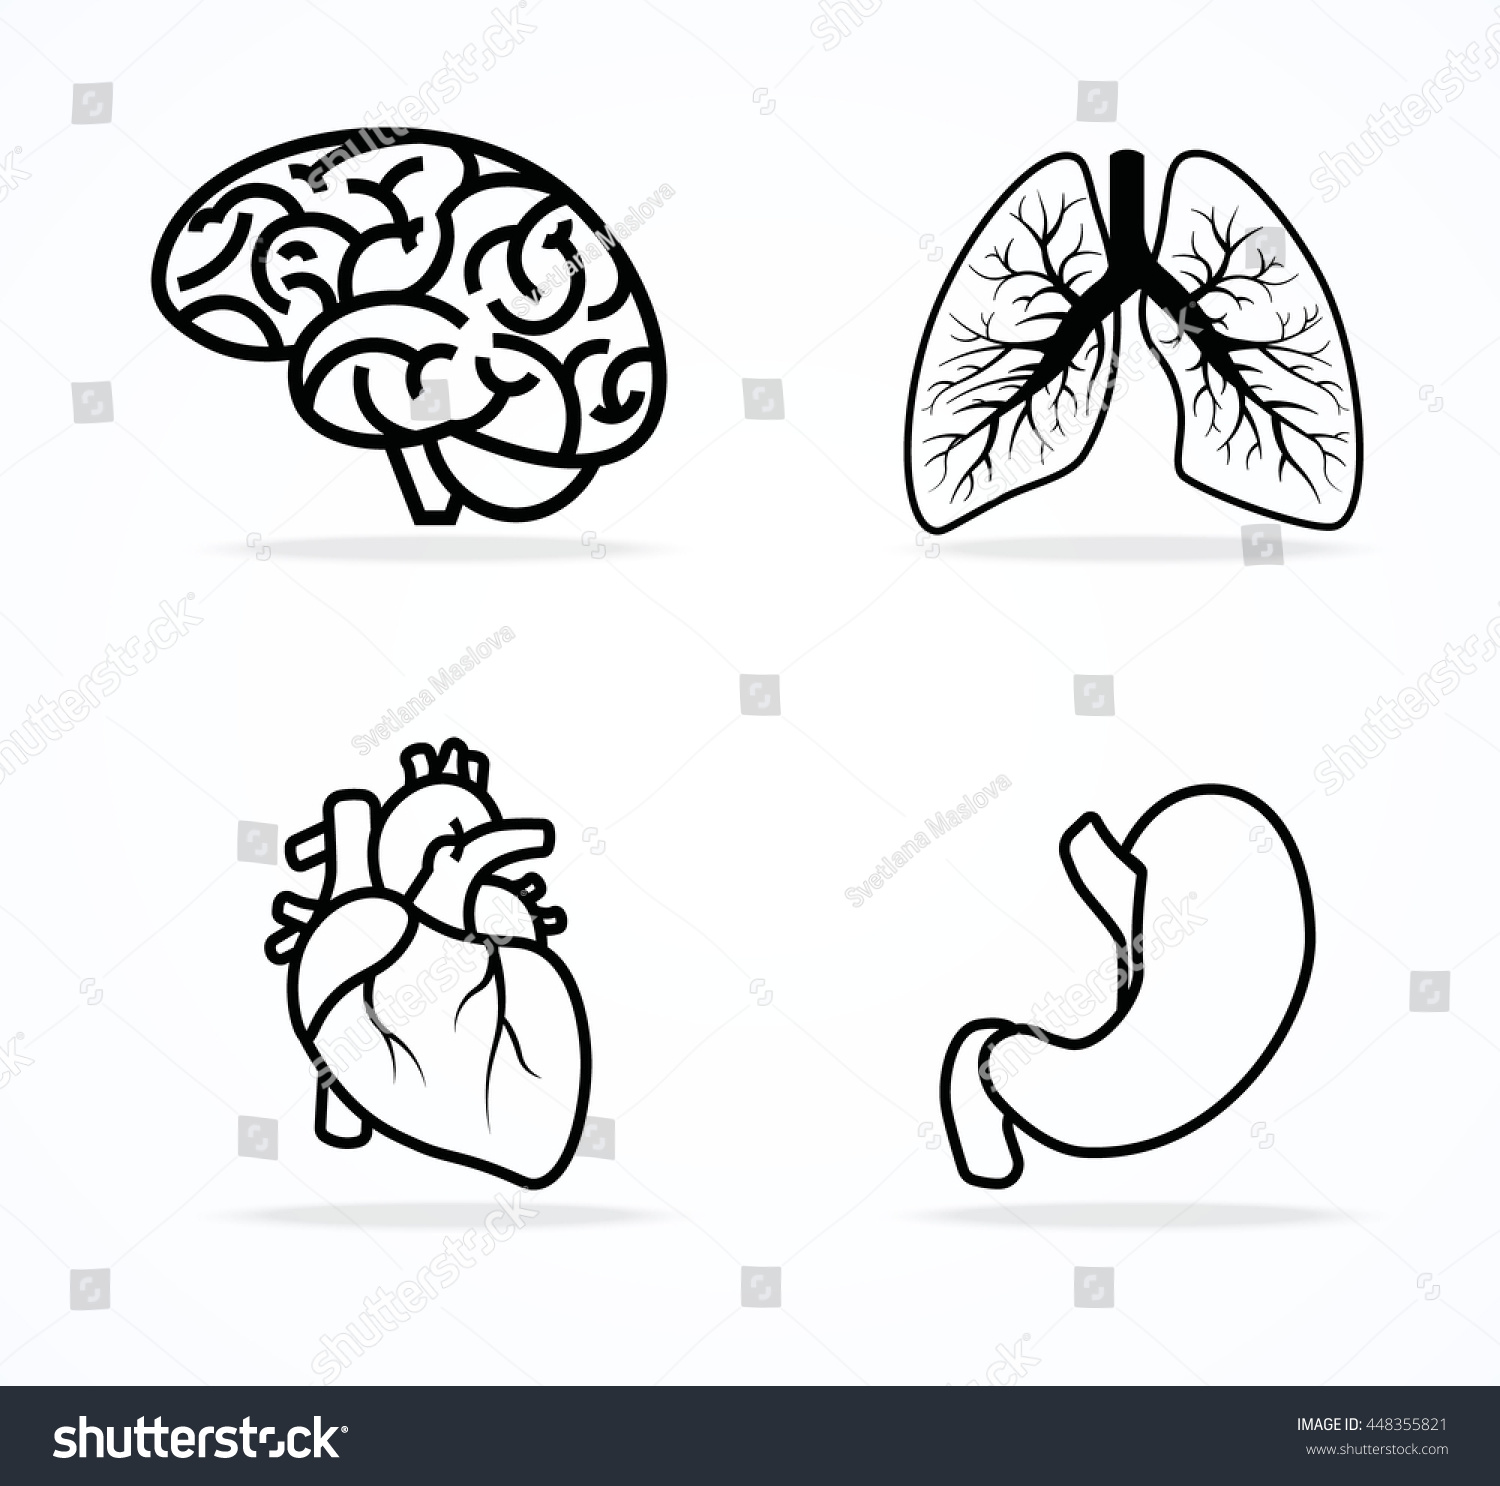 The human brain coloring book diamond - Brain Bronchi Heart And Stomach Icon Vector Isolated On White Background Line Art